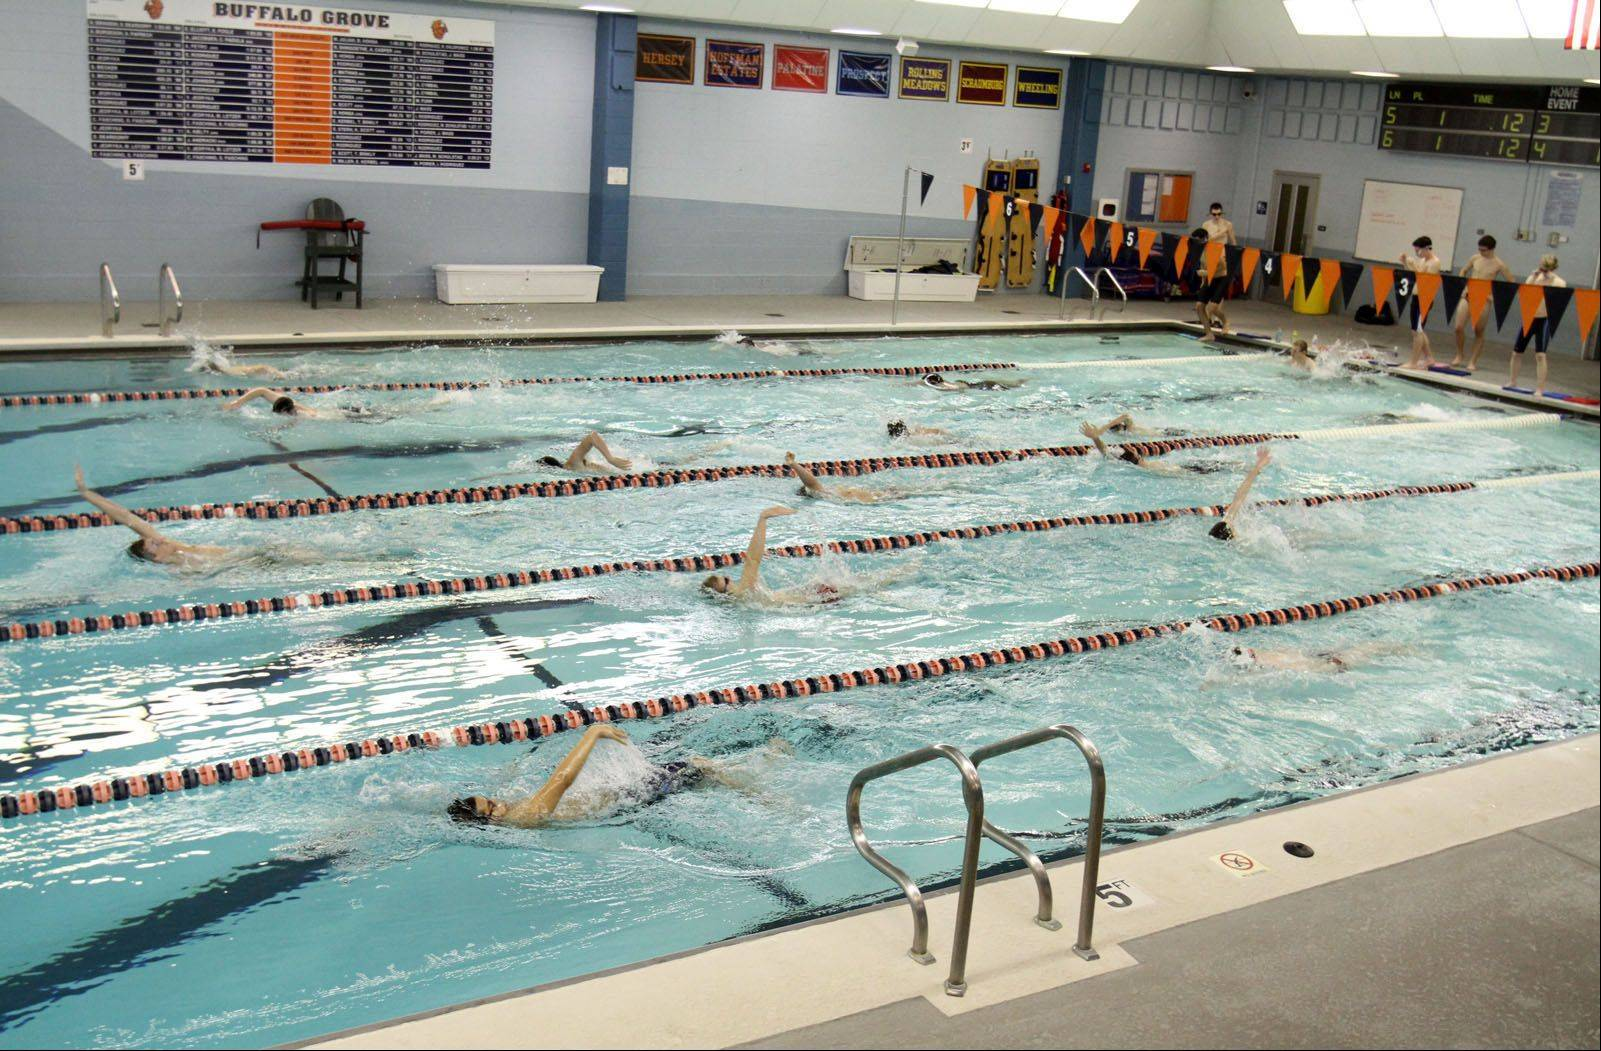 Buffalo Grove High School�s pool is getting an $11 million renovation, but three schools ion Northwest Suburban High School District 214 have no pools at all. One option to address this proposed to school leaders this month is the construction of a large aquatic facility to serve multiple schools.